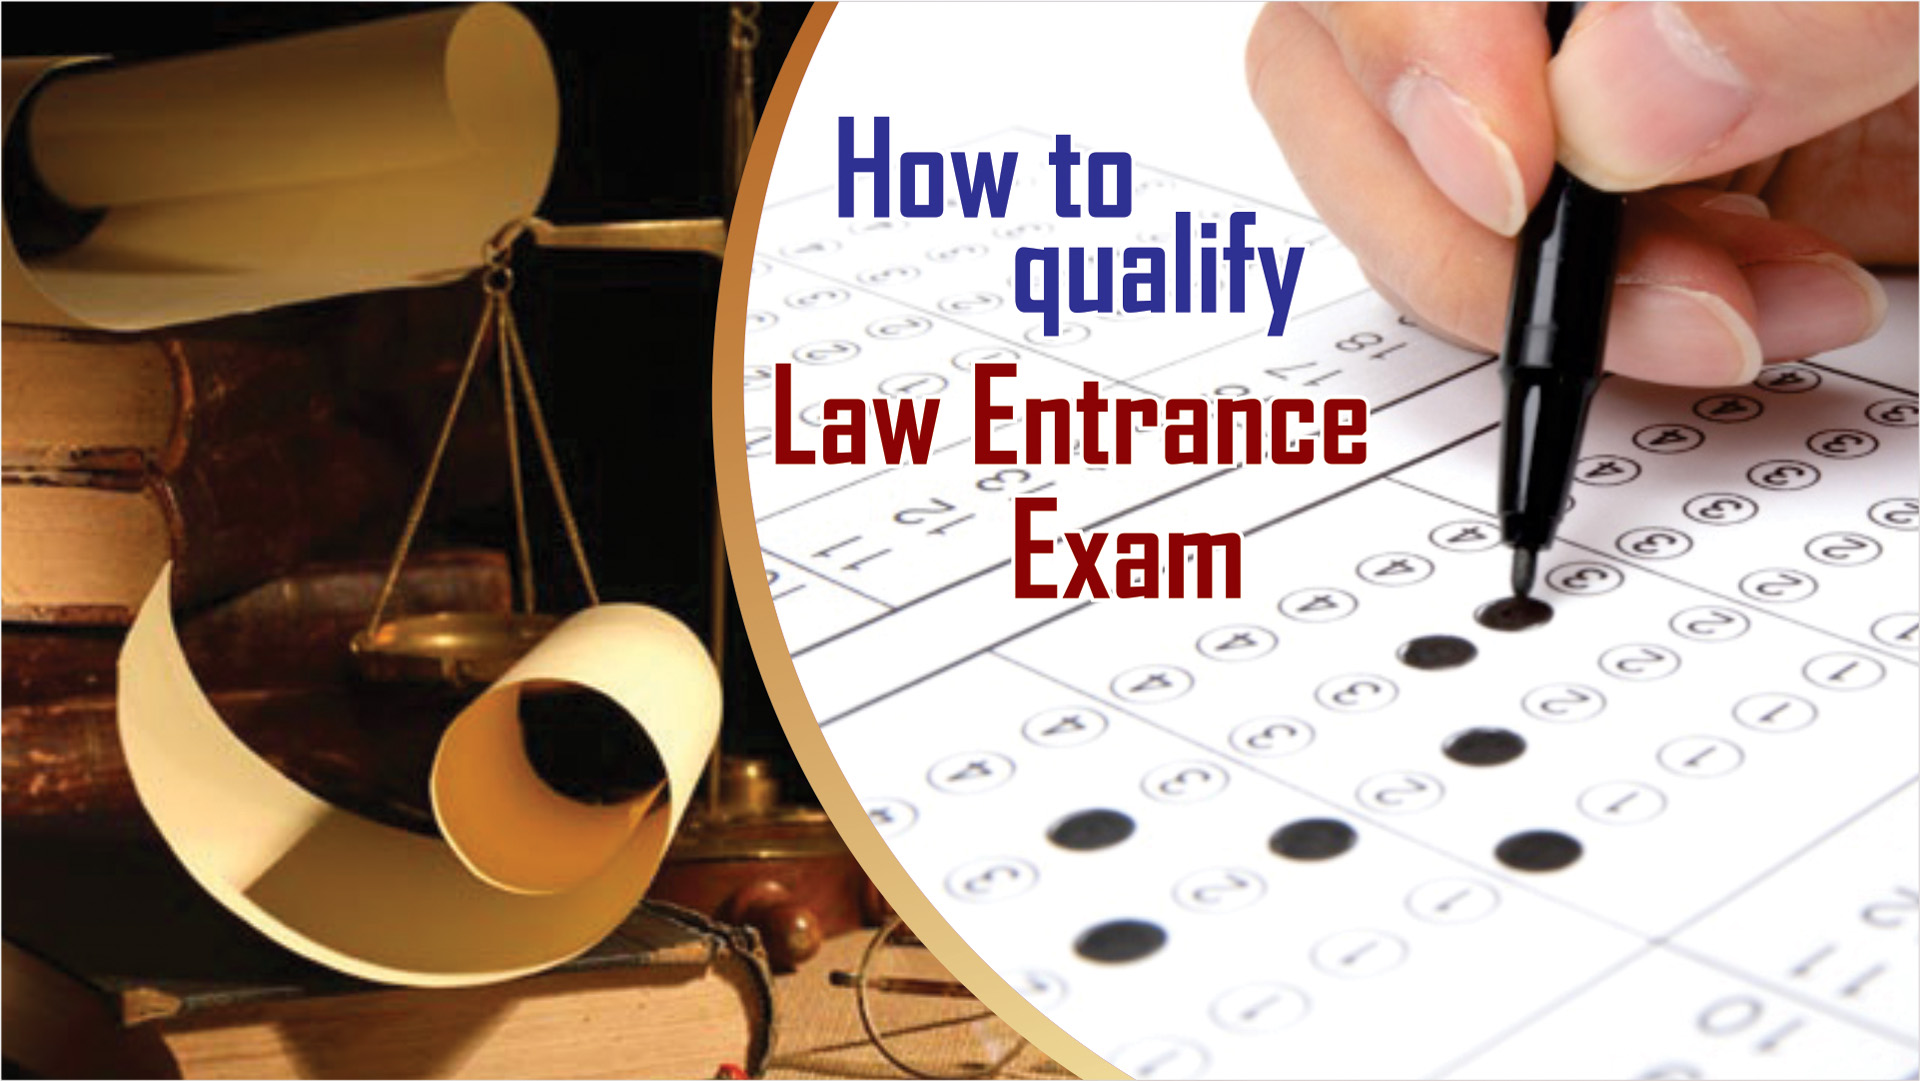 how to qualify law entrance exam